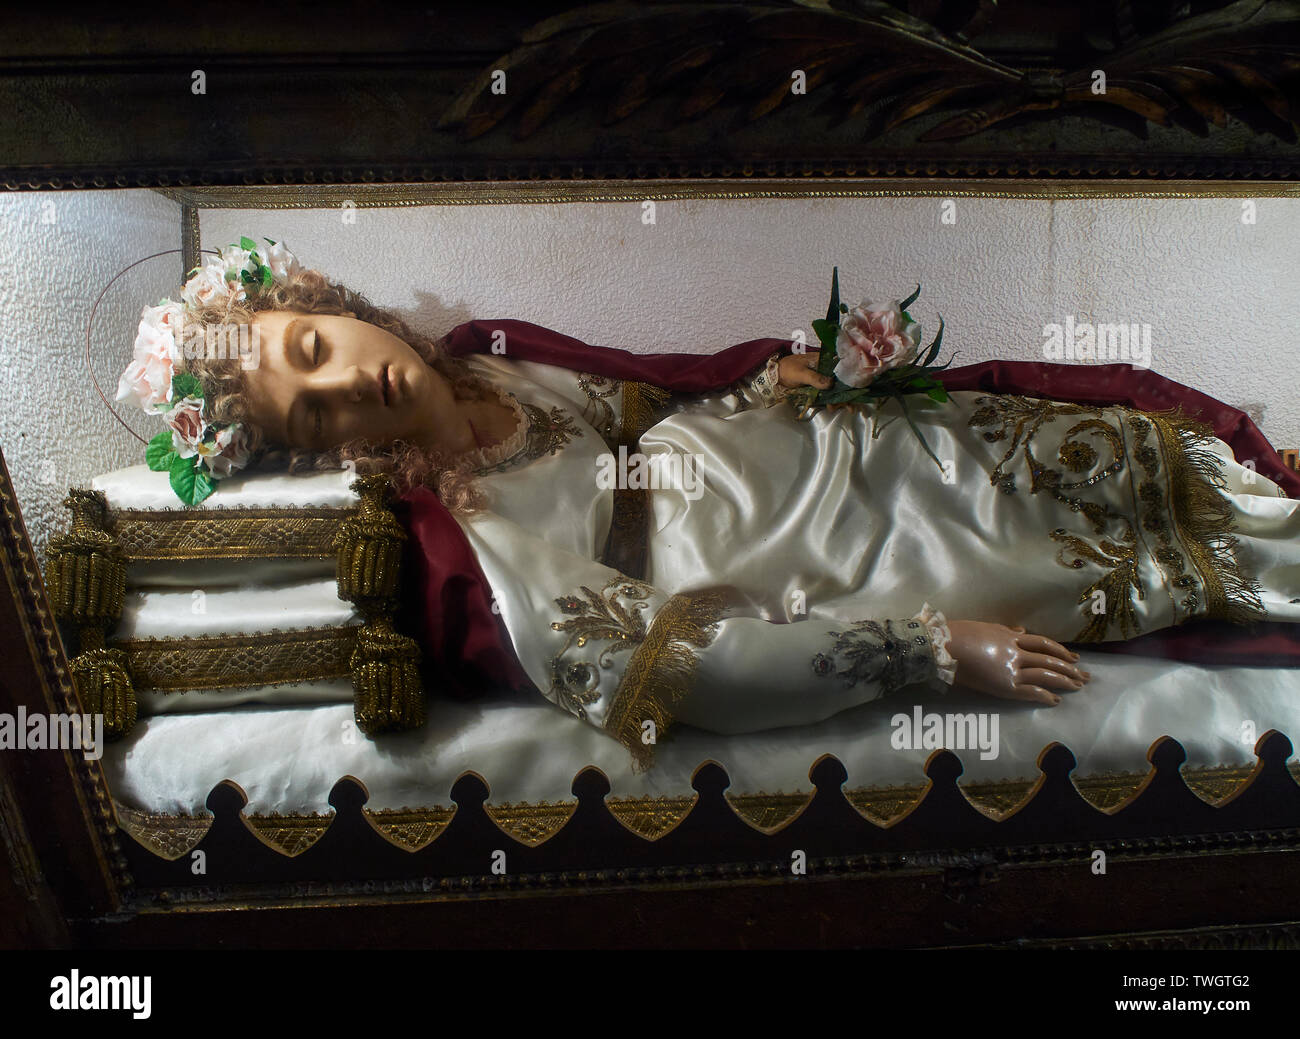 A wax image of Santa Faustina inside of the Church of San Juan Bautista, located in the fishing village of Pasajes de San Juan. Gipuzkoa, Spain. - Stock Image